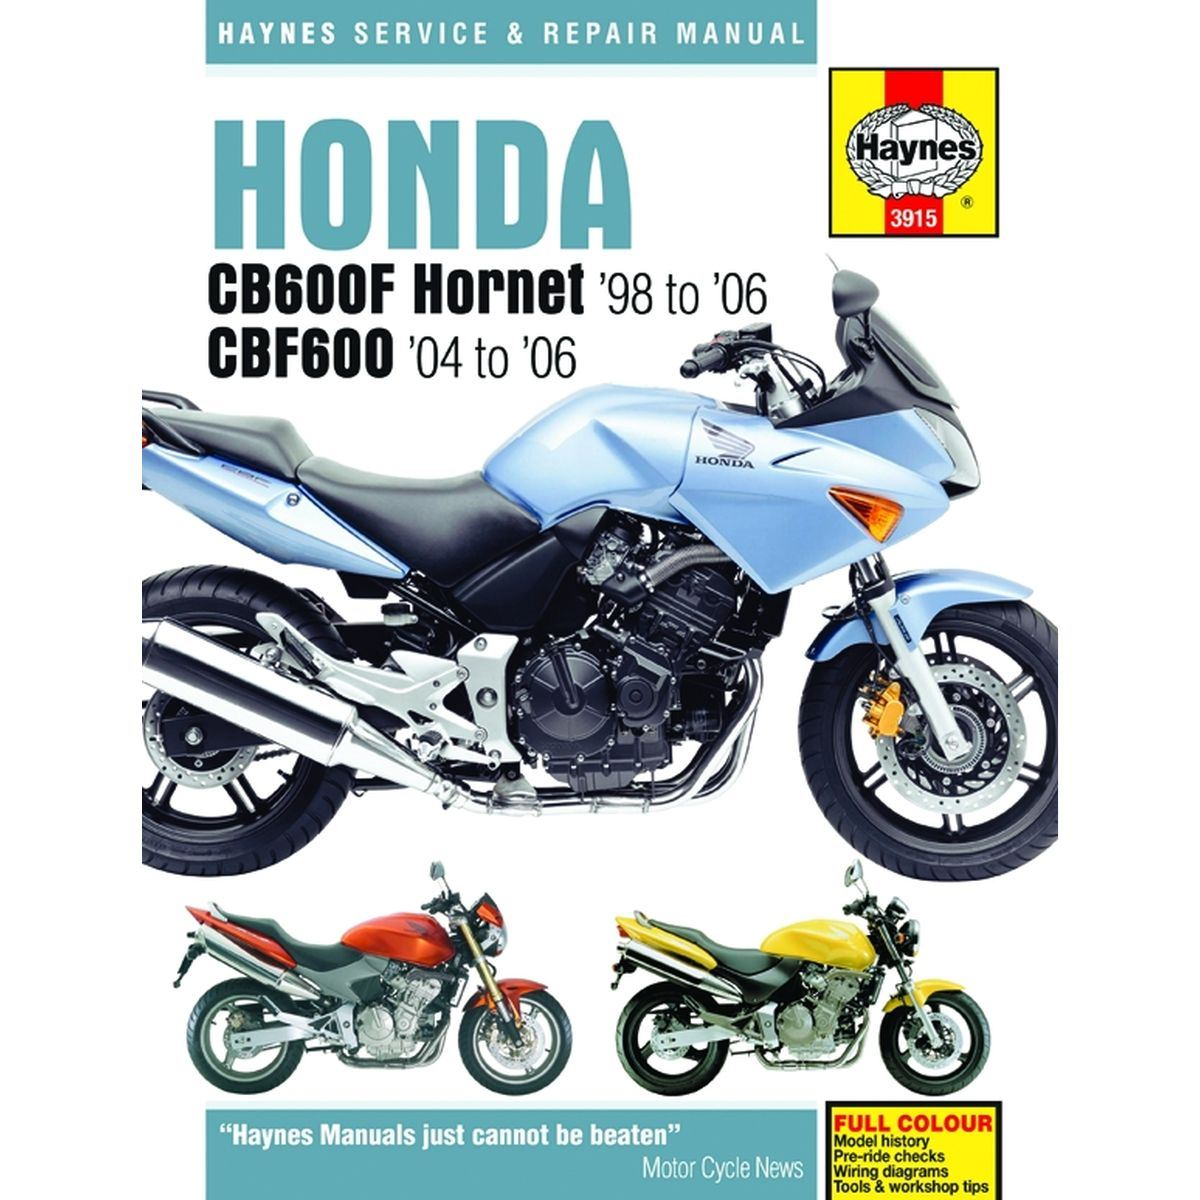 yamaha motorcycle manuals free download